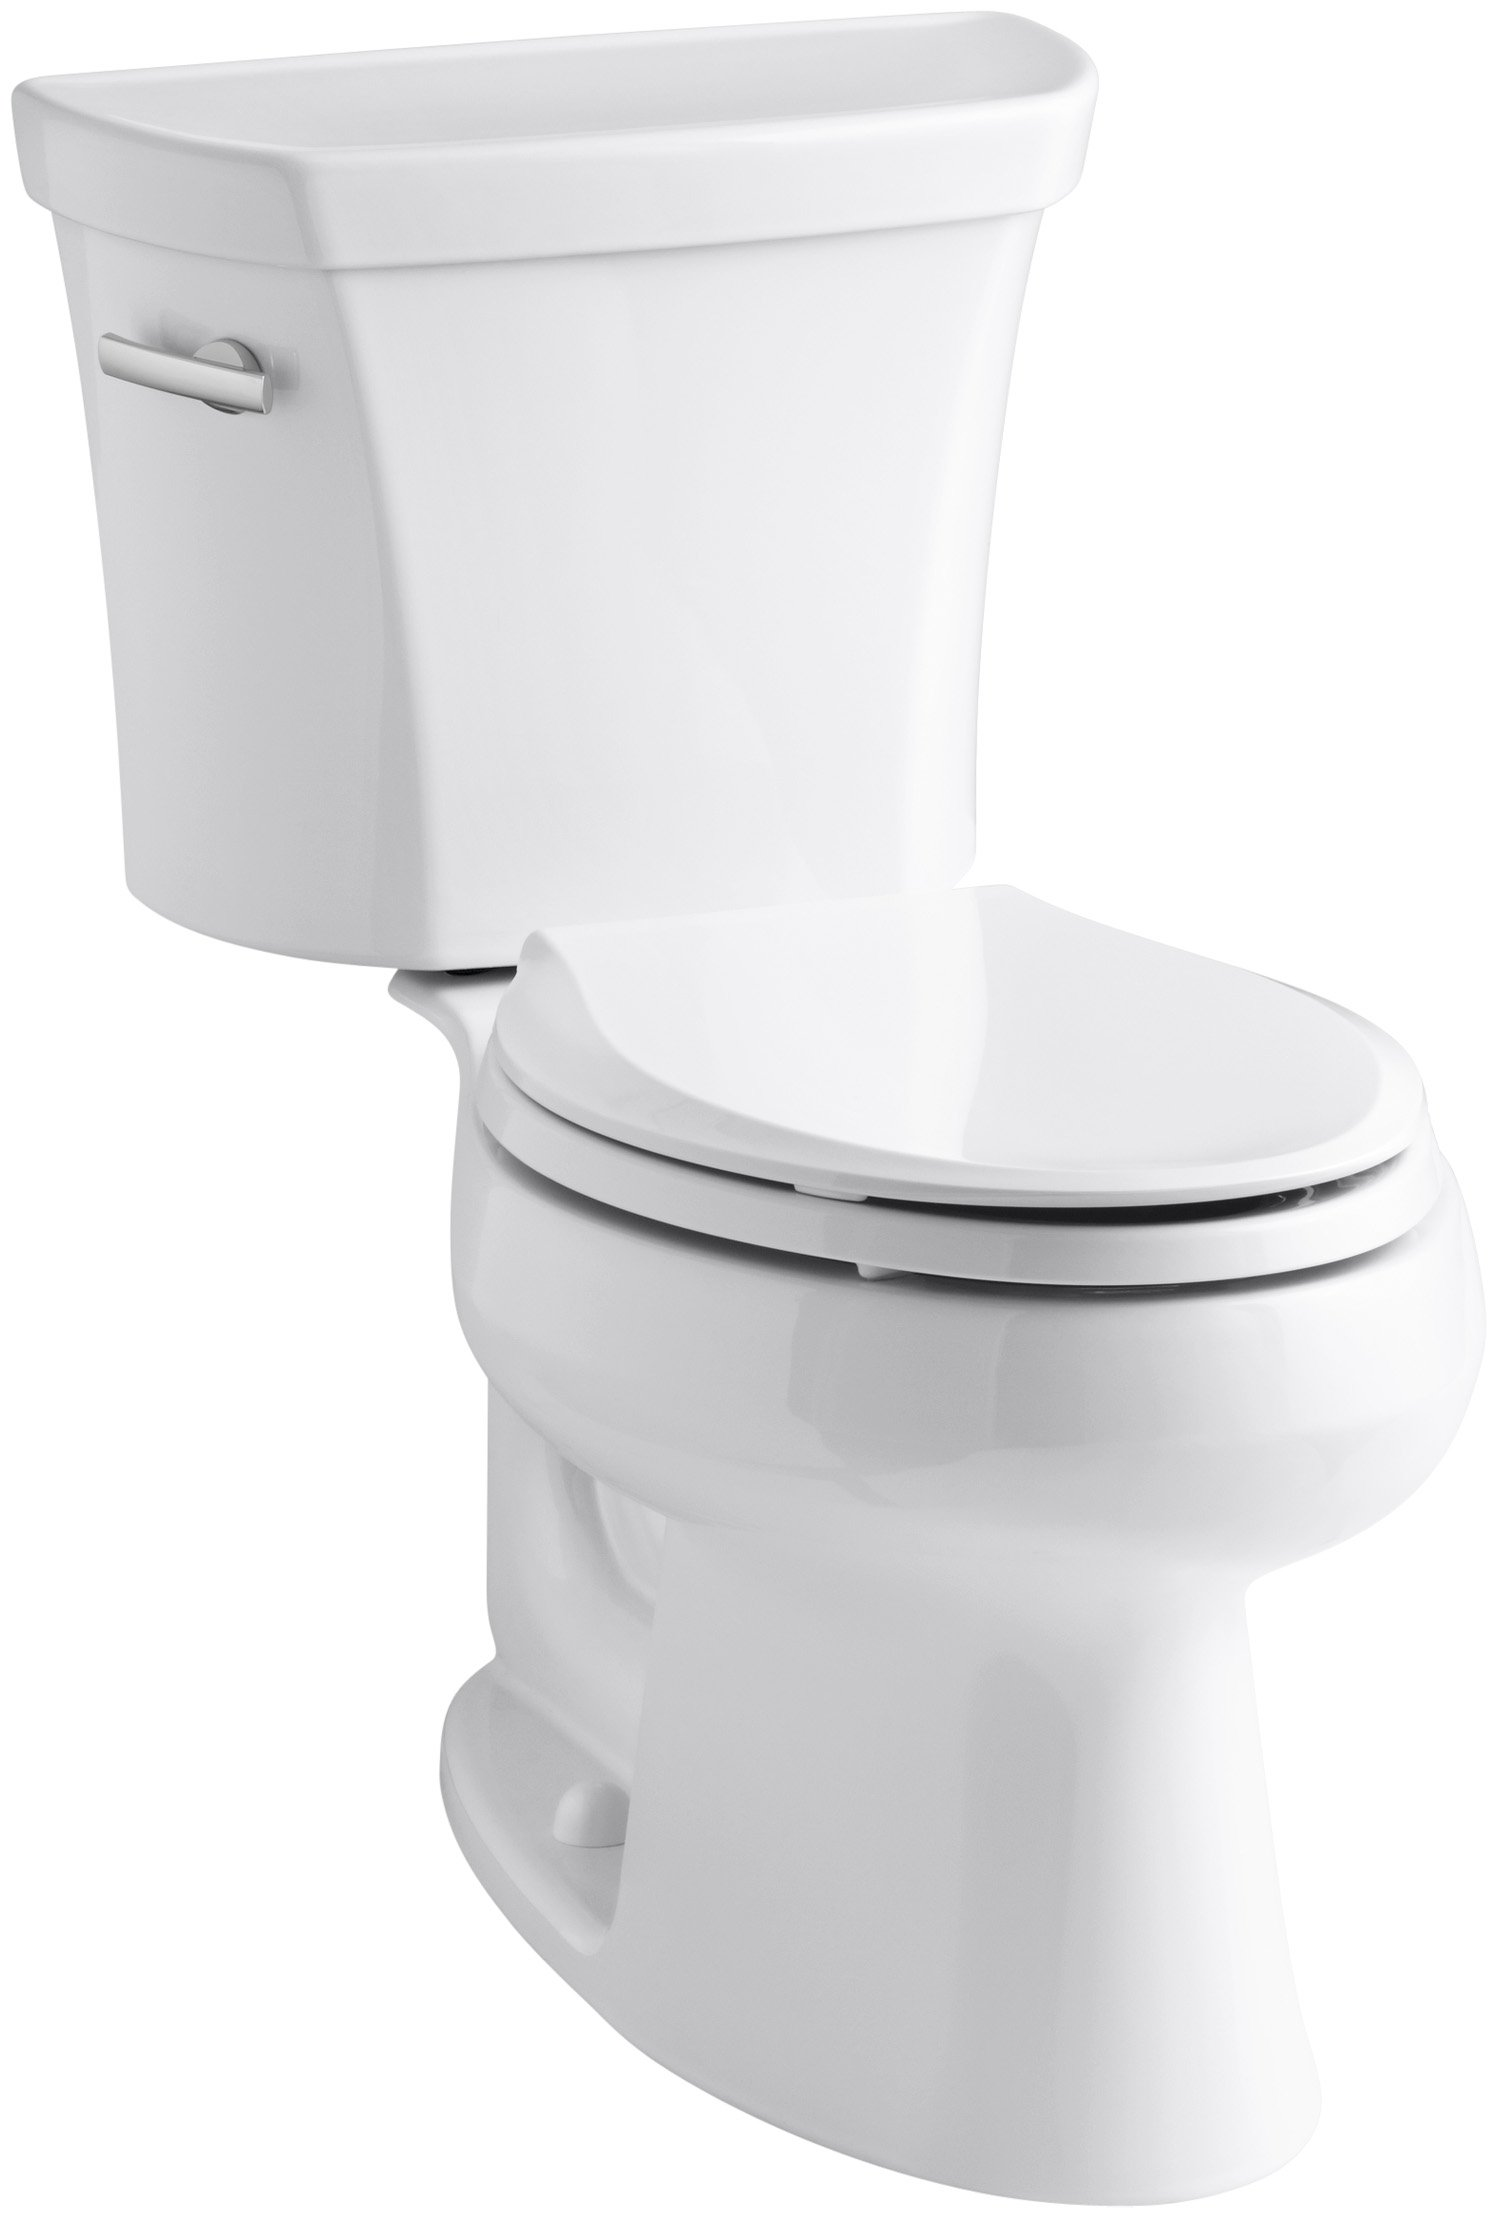 Kohler K-3998-0 Wellworth Elongated 1.28 gpf Toilet, White by Kohler